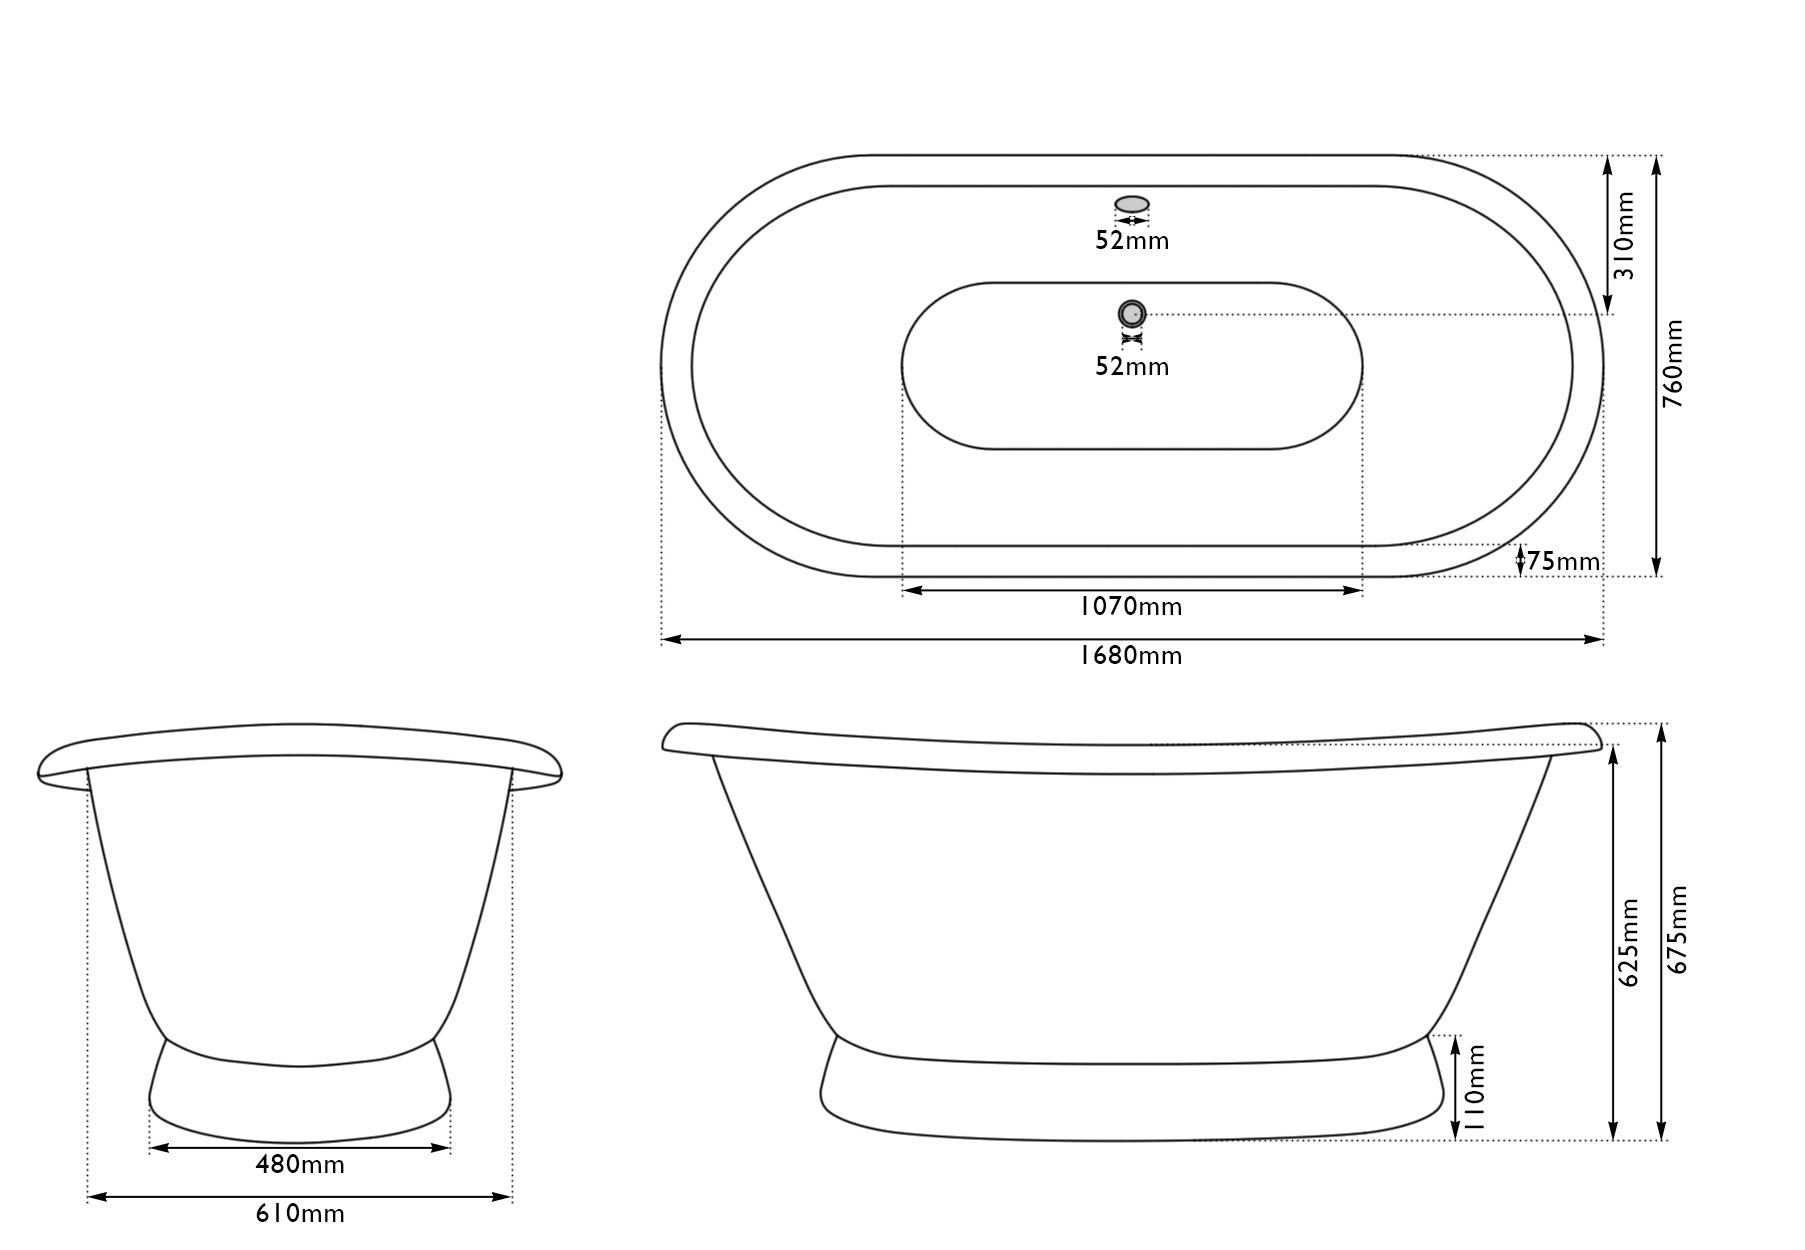 Dimensions for The Bath Co. Stirling smoke grey cast iron bath